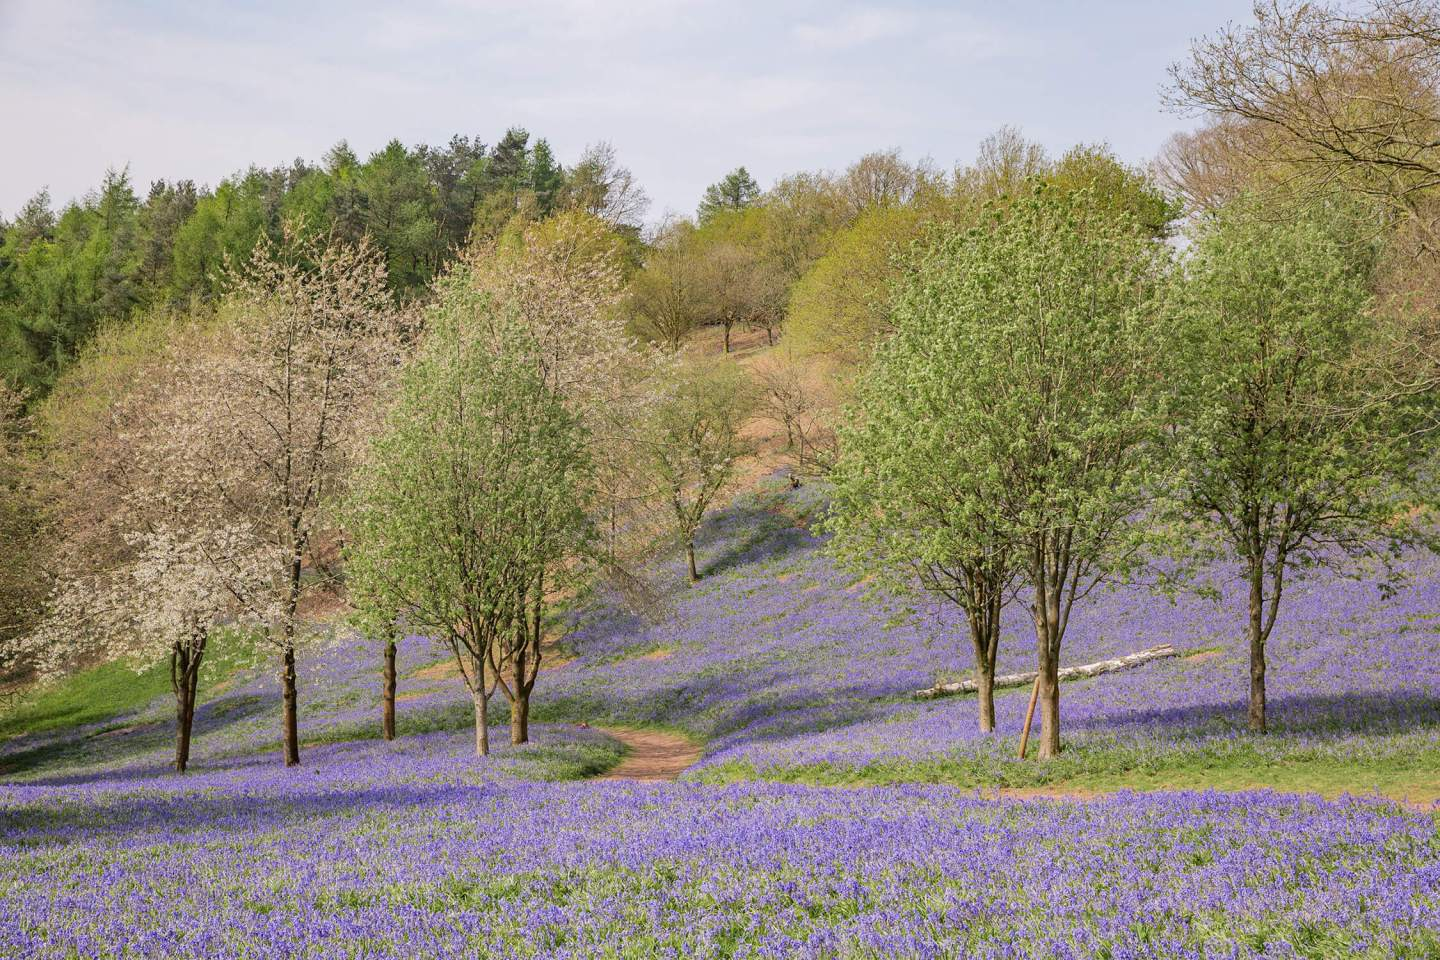 Bluebells-In-The-West-Midlands.jpg